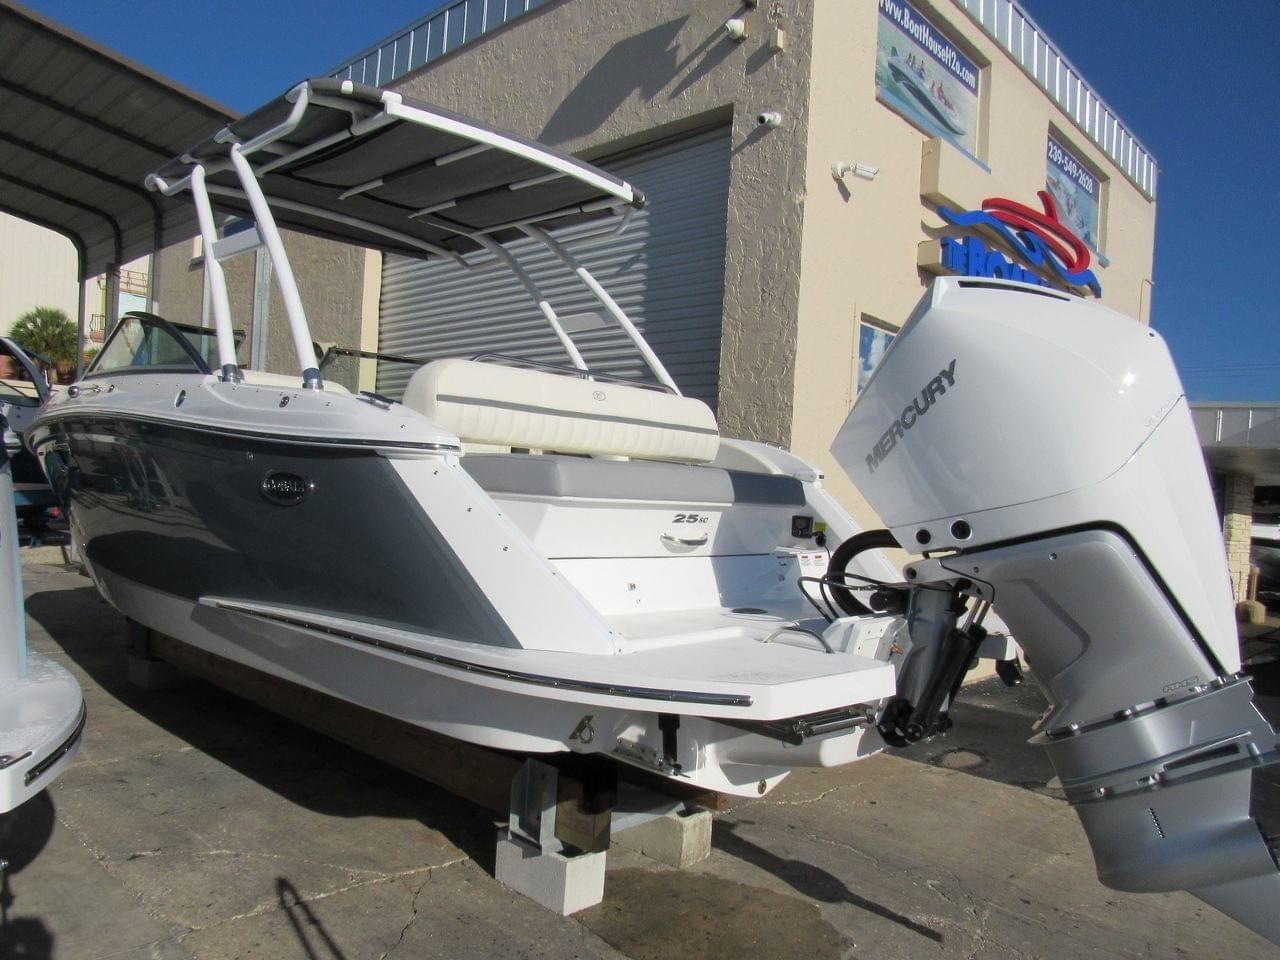 New 2019 Cobalt 25 Sc Stock 407772 B1 The Boat House